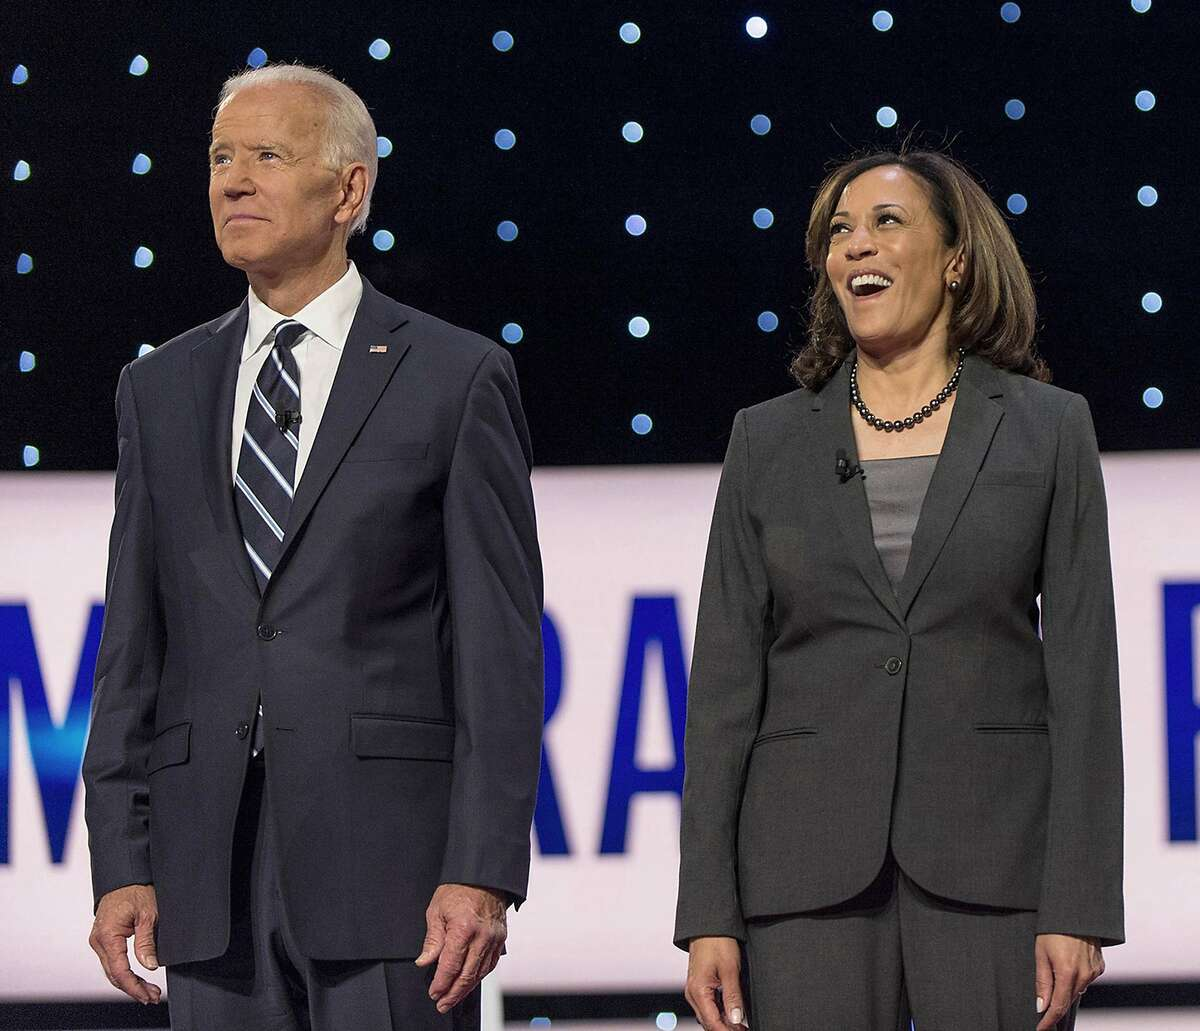 Joe Biden and Kamala Harris pose for the photo spray during a commercial break at the second of two Democratic Debates in Detroit hosted by CNN and sanctioned by the DNC. (Brian Cahn/Zuma Press/TNS)